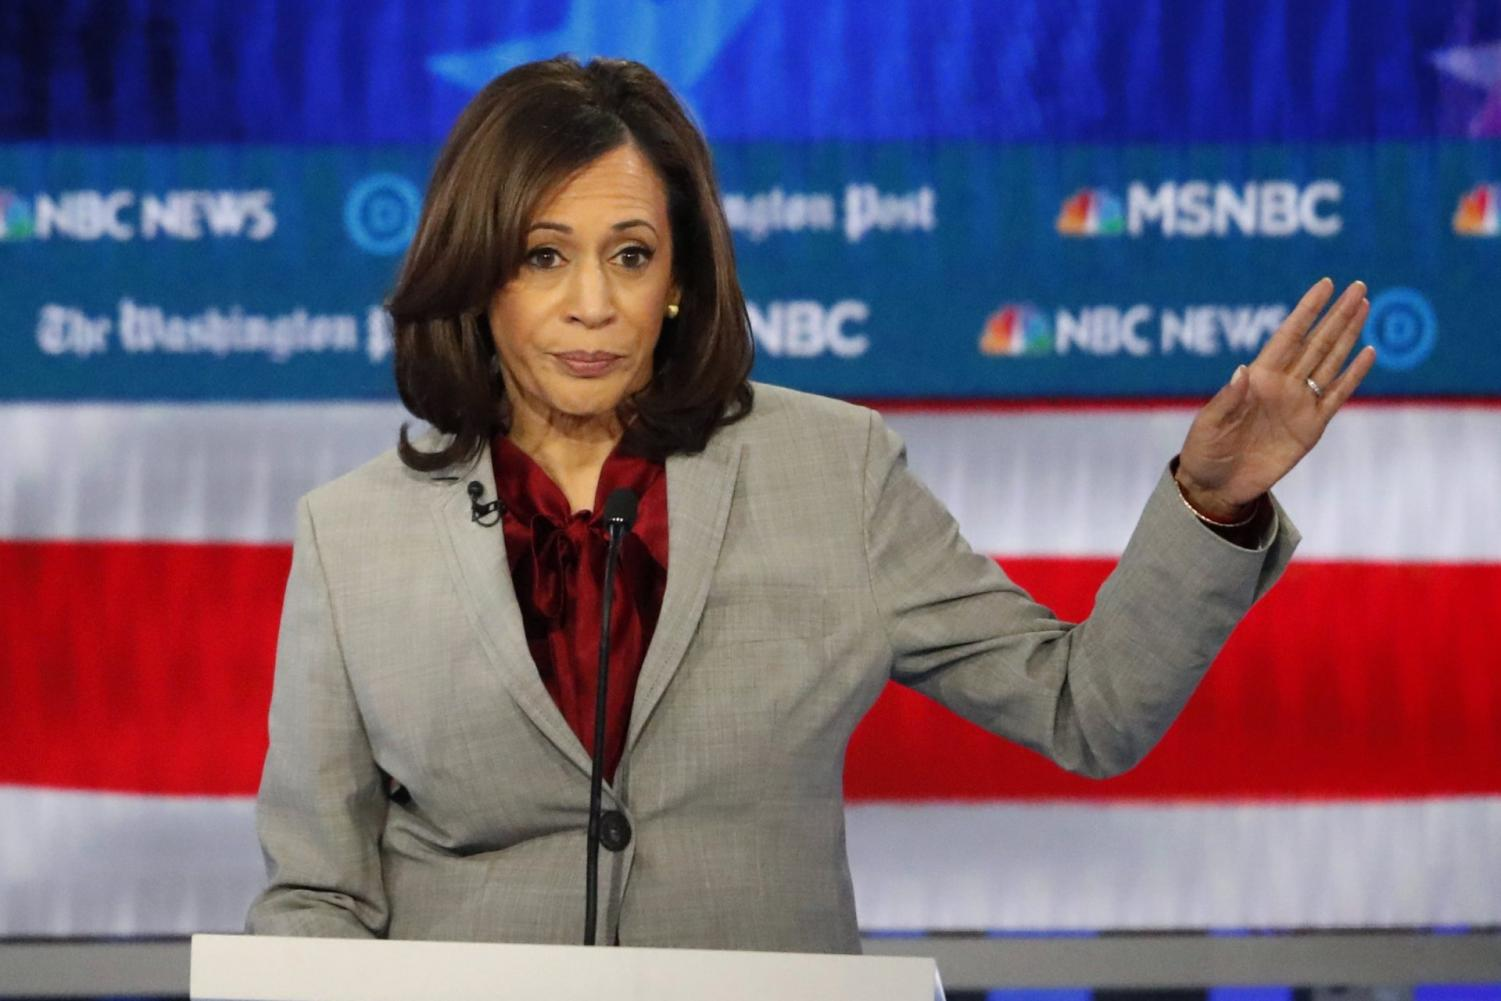 In this Nov. 20, 2019 file photo, Democratic presidential candidate Sen. Kamala Harris, D-Calif., speaks during a Democratic presidential primary debate in Atlanta. Harris, was once considered a front-runner in the crowded Democratic field, is expected to end her campaign for the Democratic presidential nomination, according to a campaign official.